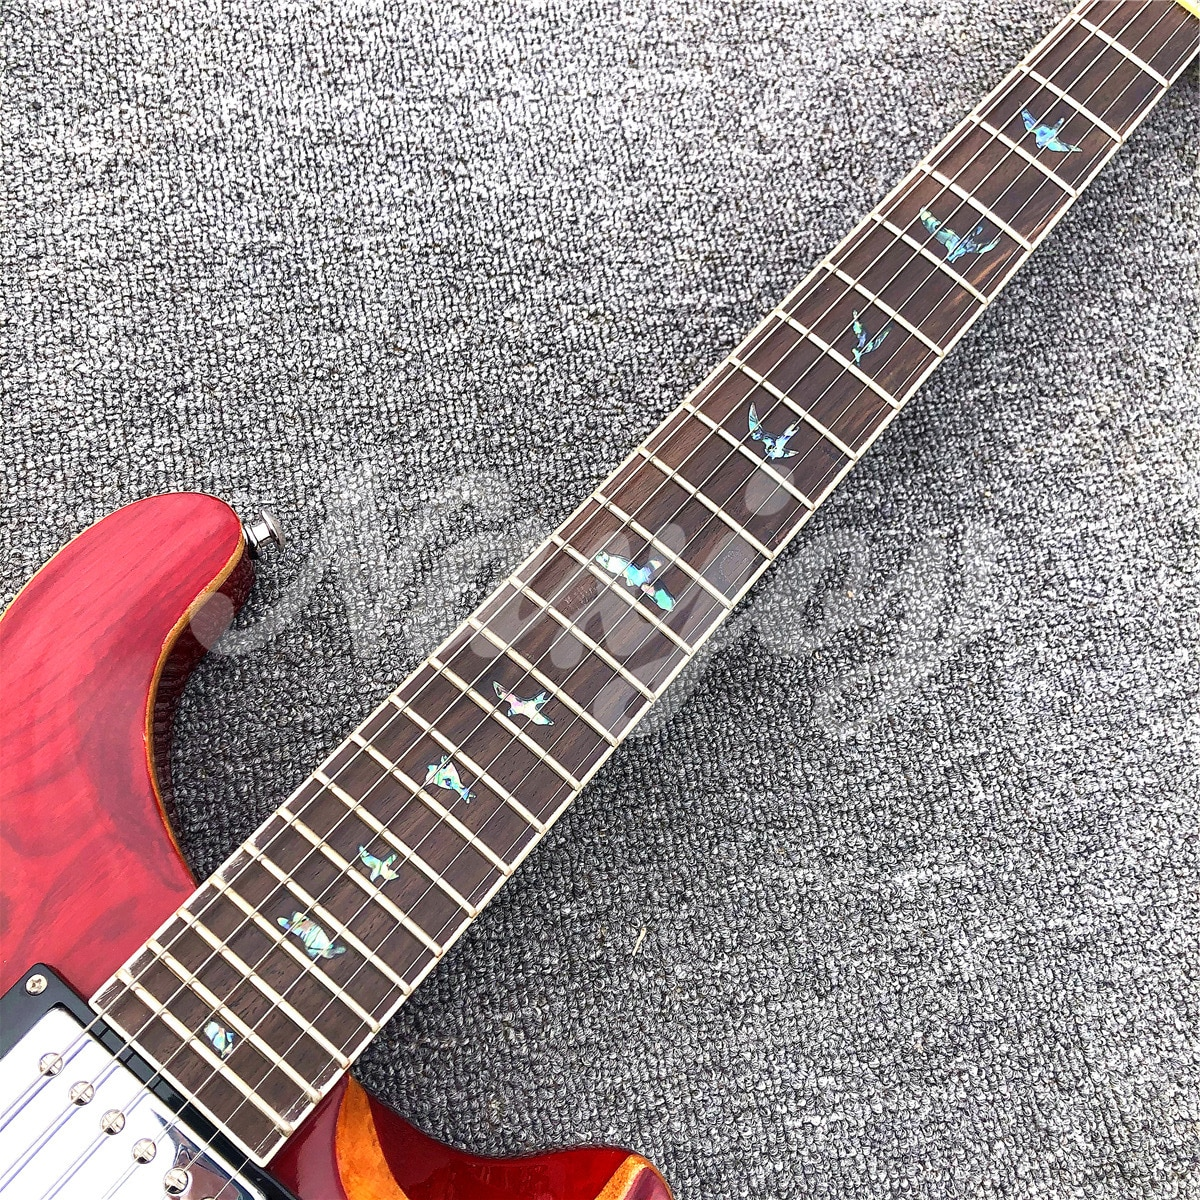 Glossy Red Solid Mahogany Electric Guitar,Abalone Rosewood Fingerboard 6 Strings Guitar,Real Photos,Free Shipping enlarge